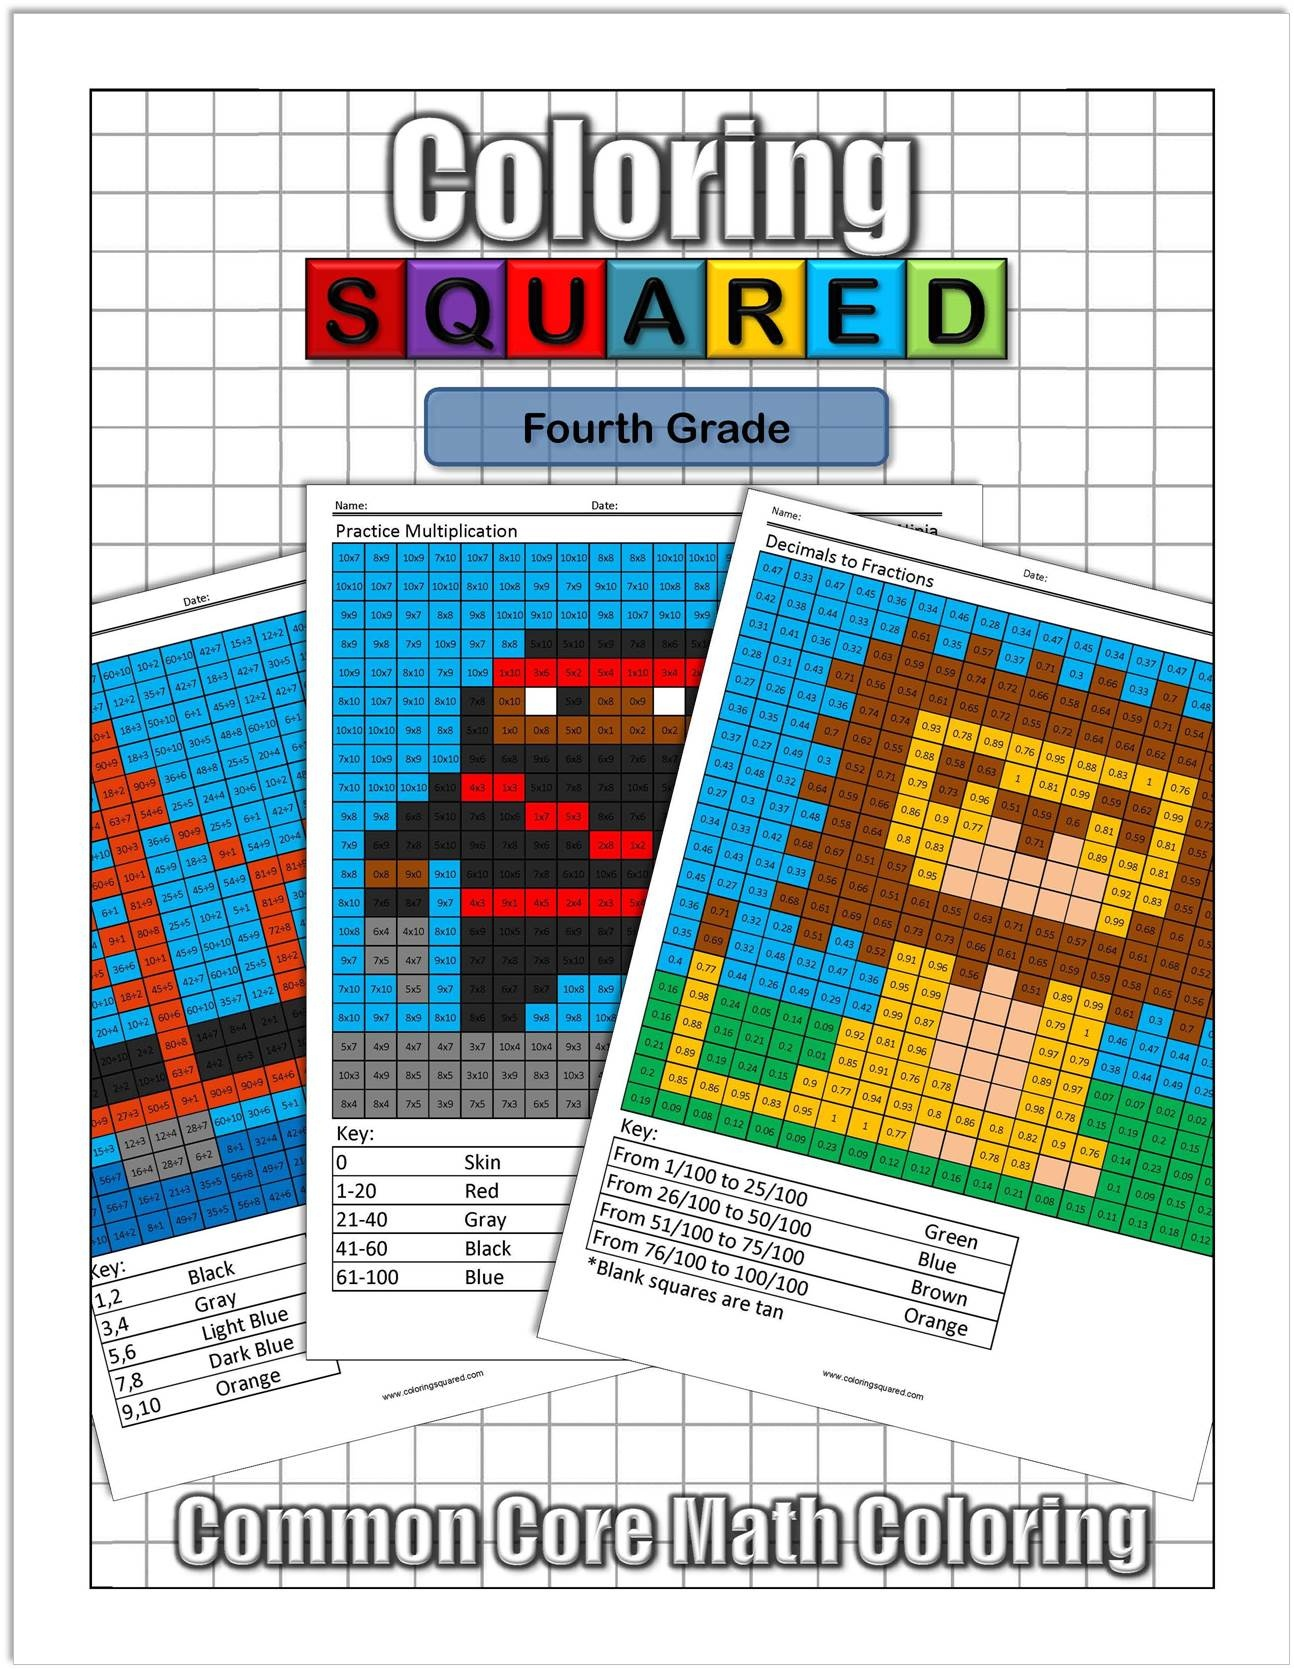 4Th Grade Math - Coloring Squared - Free Printable Fun Math Worksheets For 4Th Grade